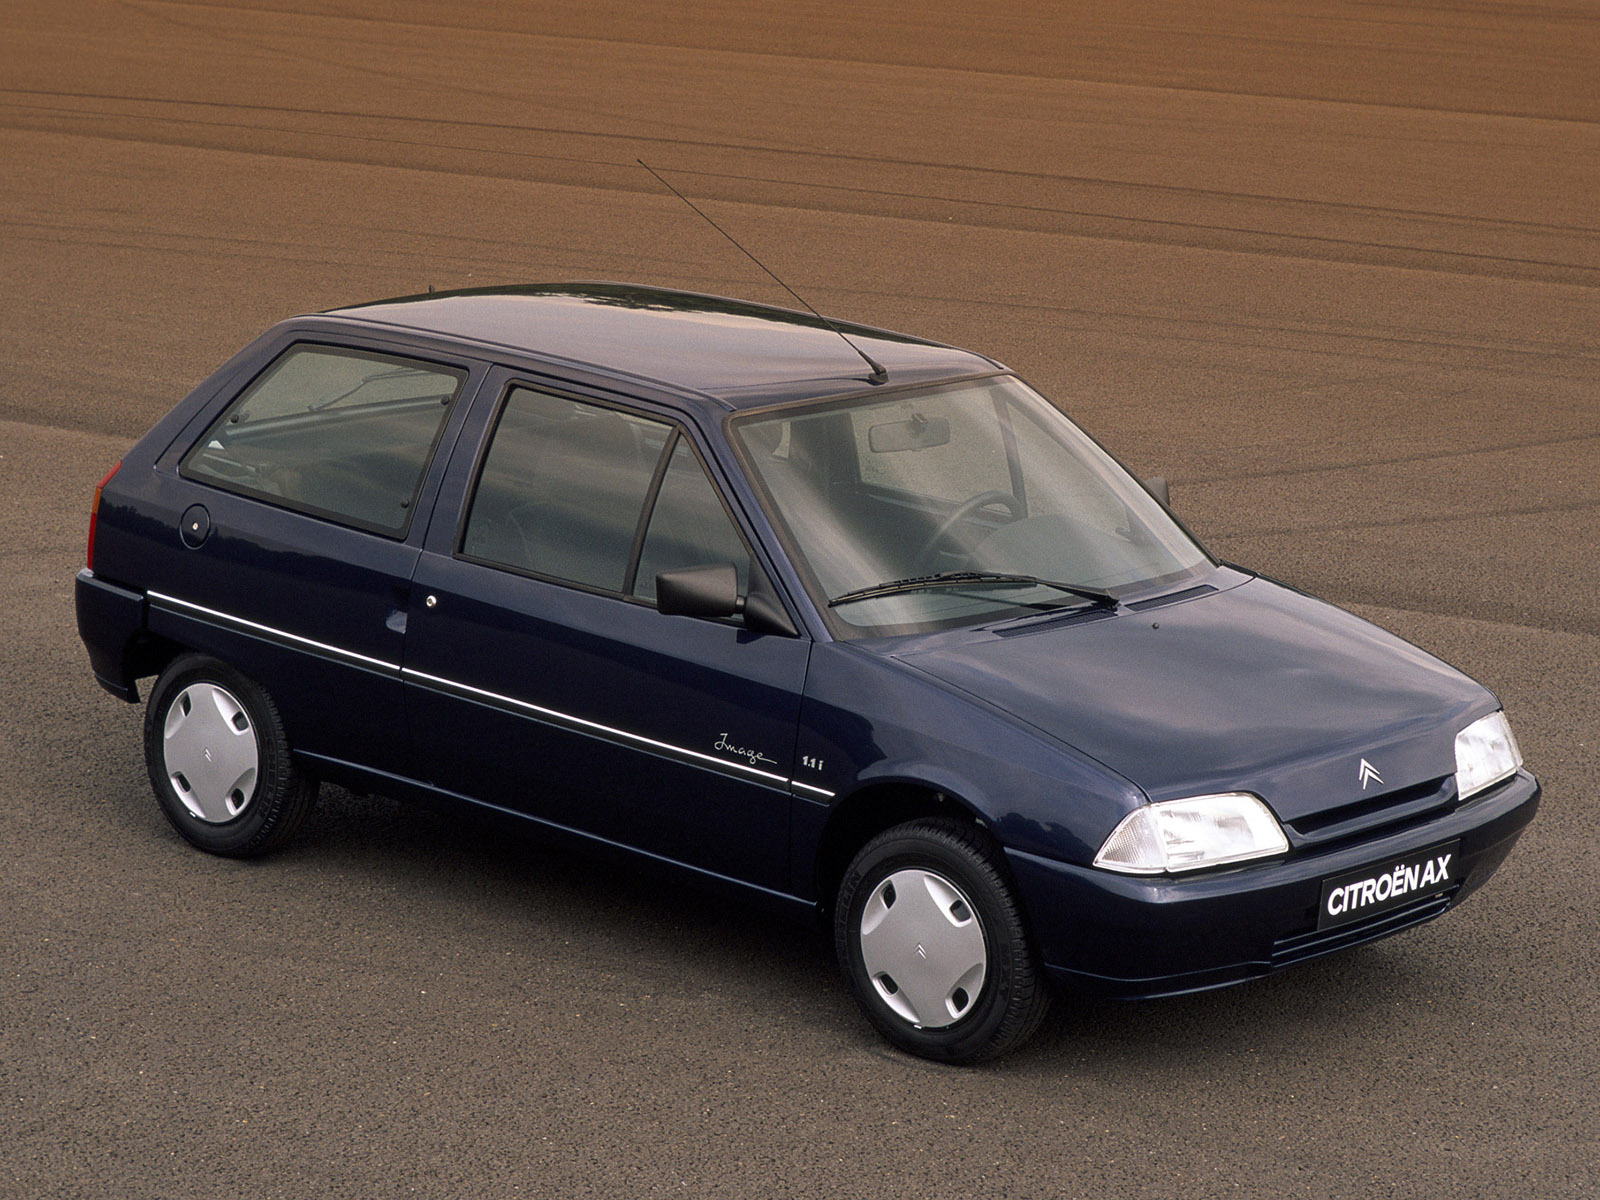 Where Is Honda Made >> Autos World For All: Citroen AX